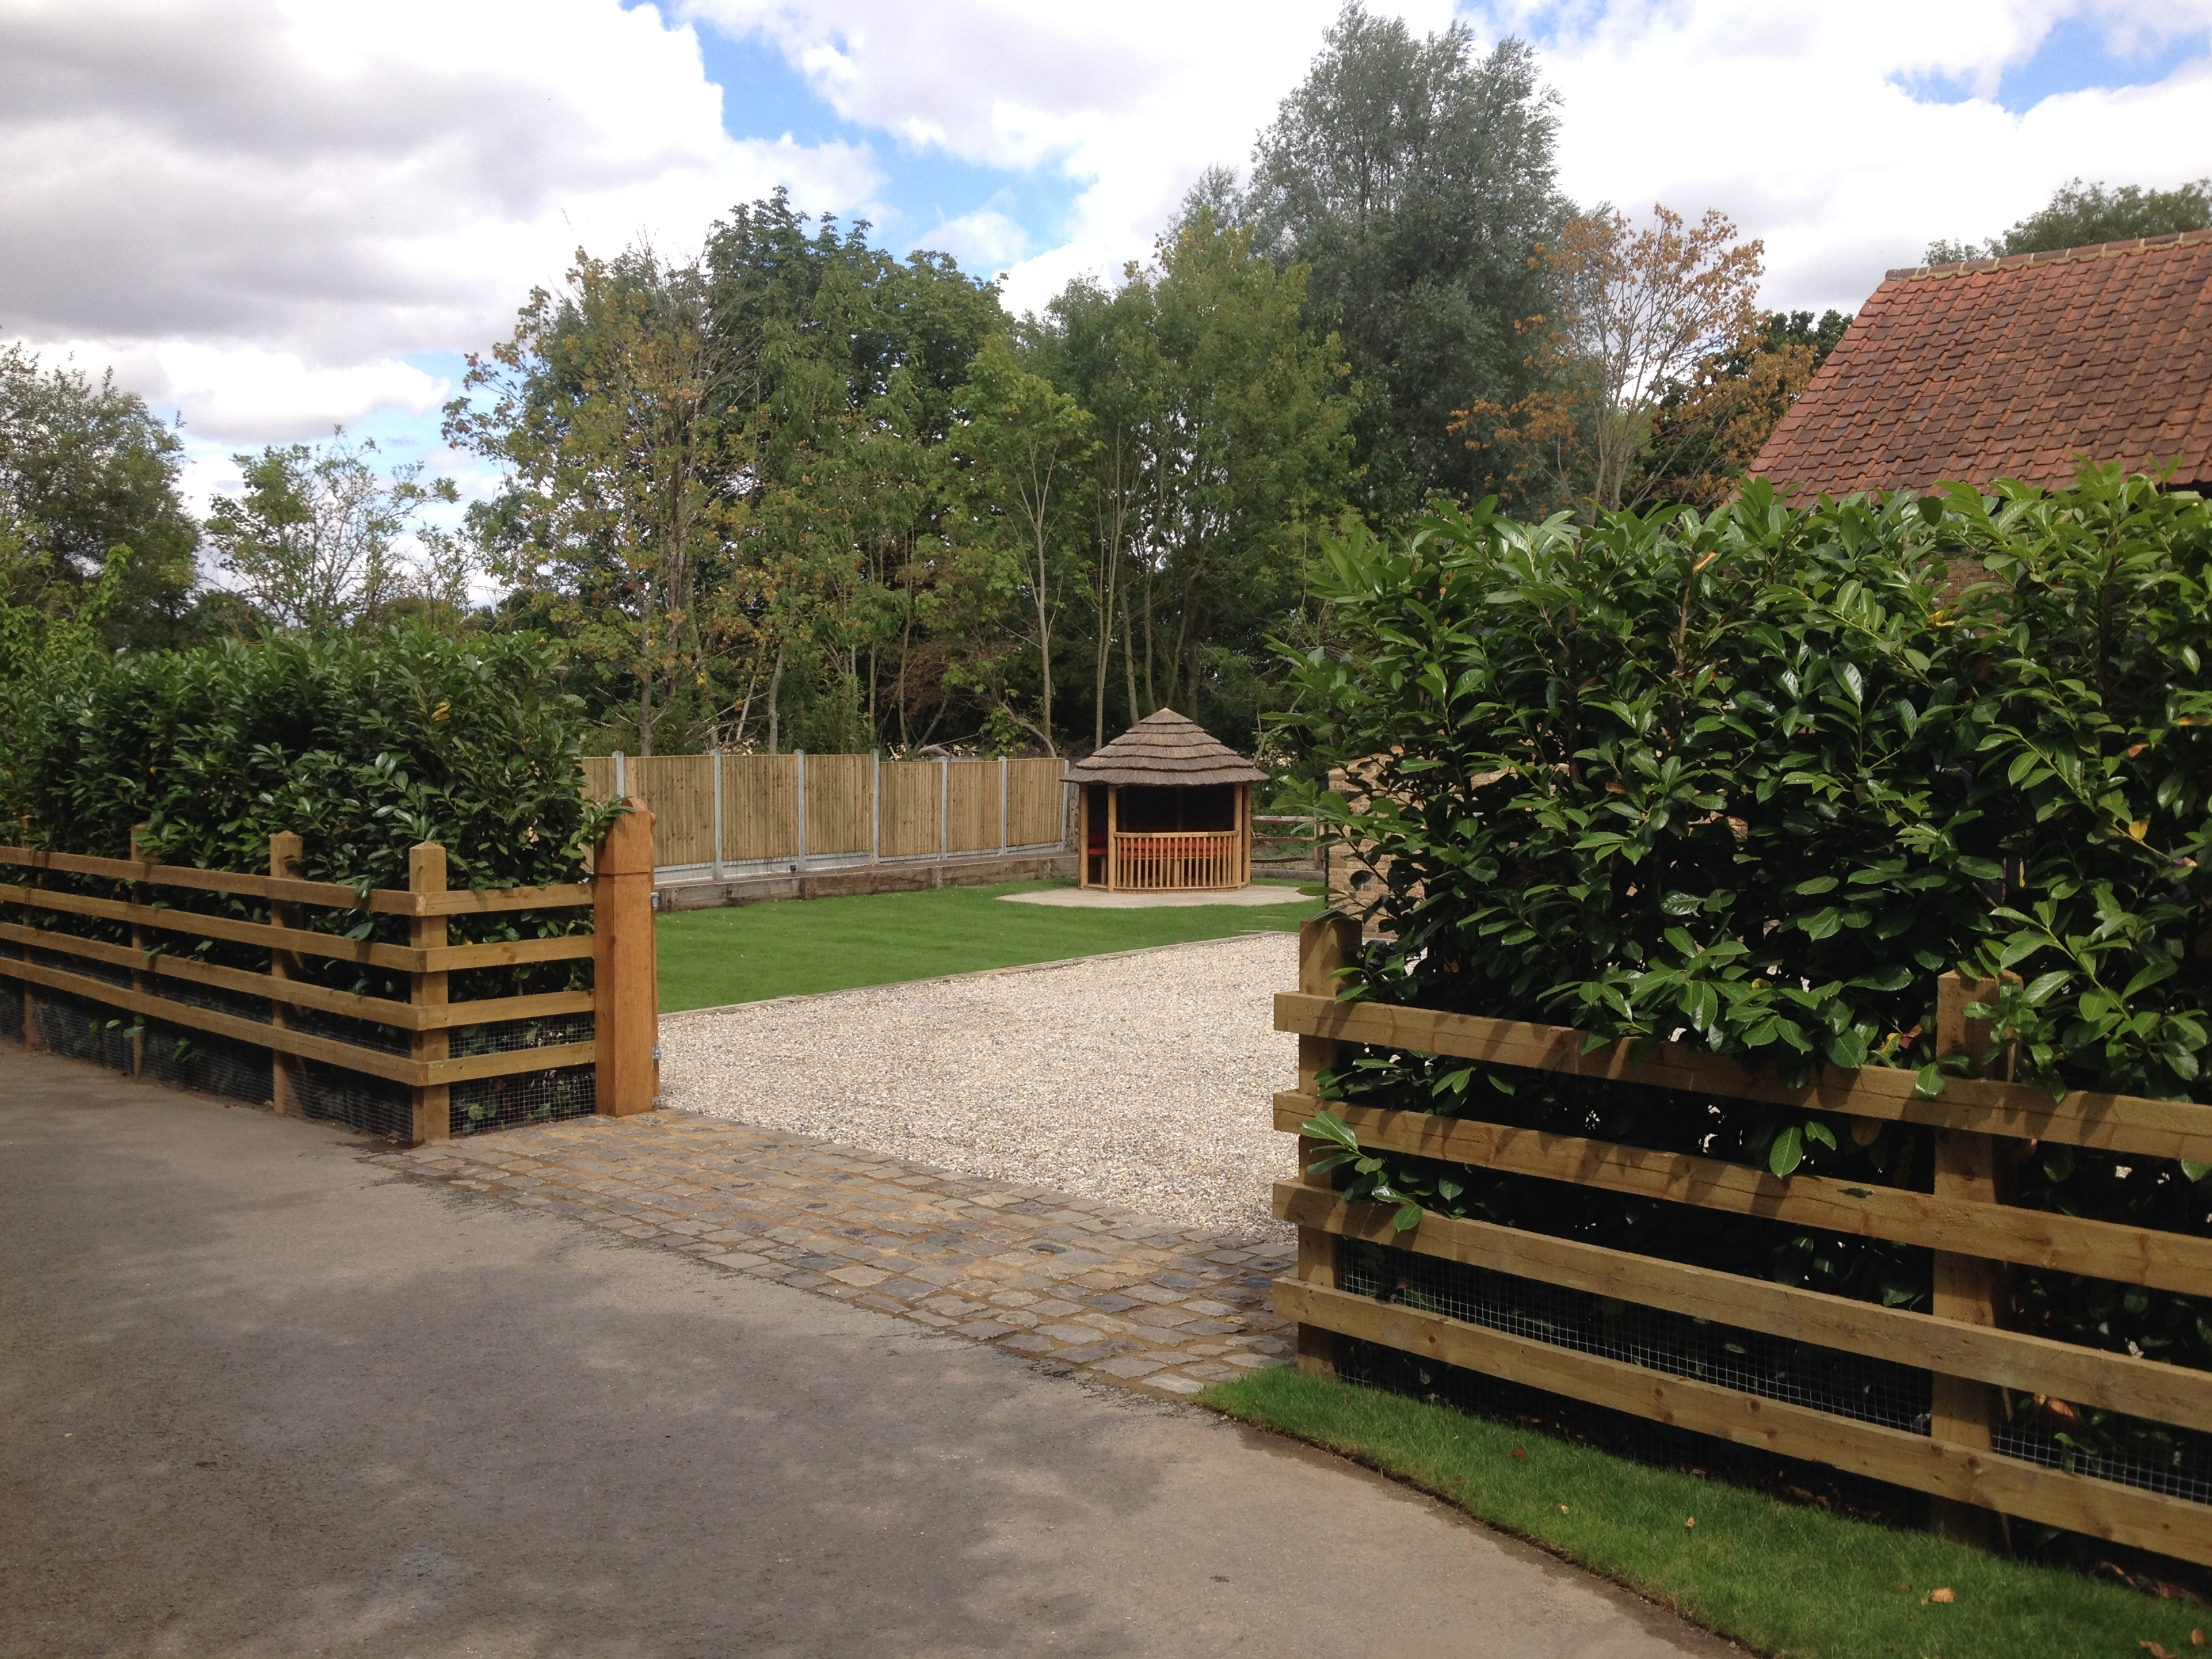 Landscape construction services in suffolk and essex for Landscape construction